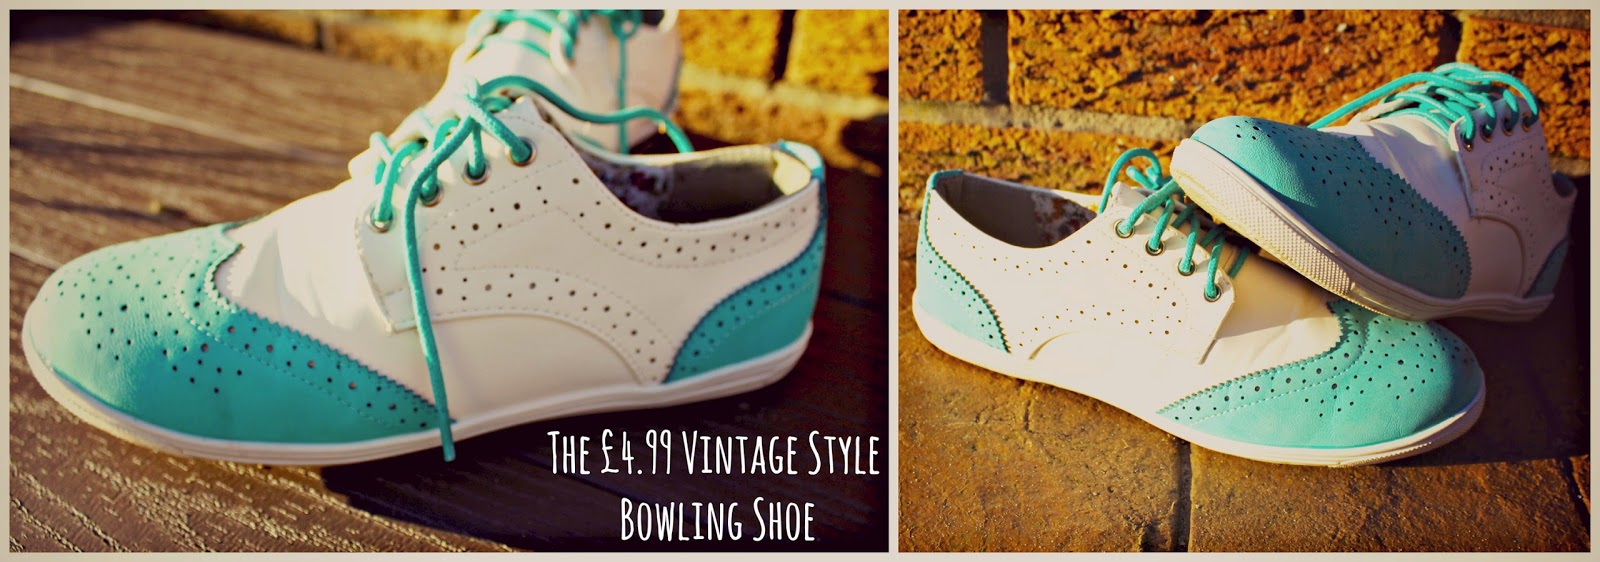 The £4.99 Vintage Style Bowling Shoe